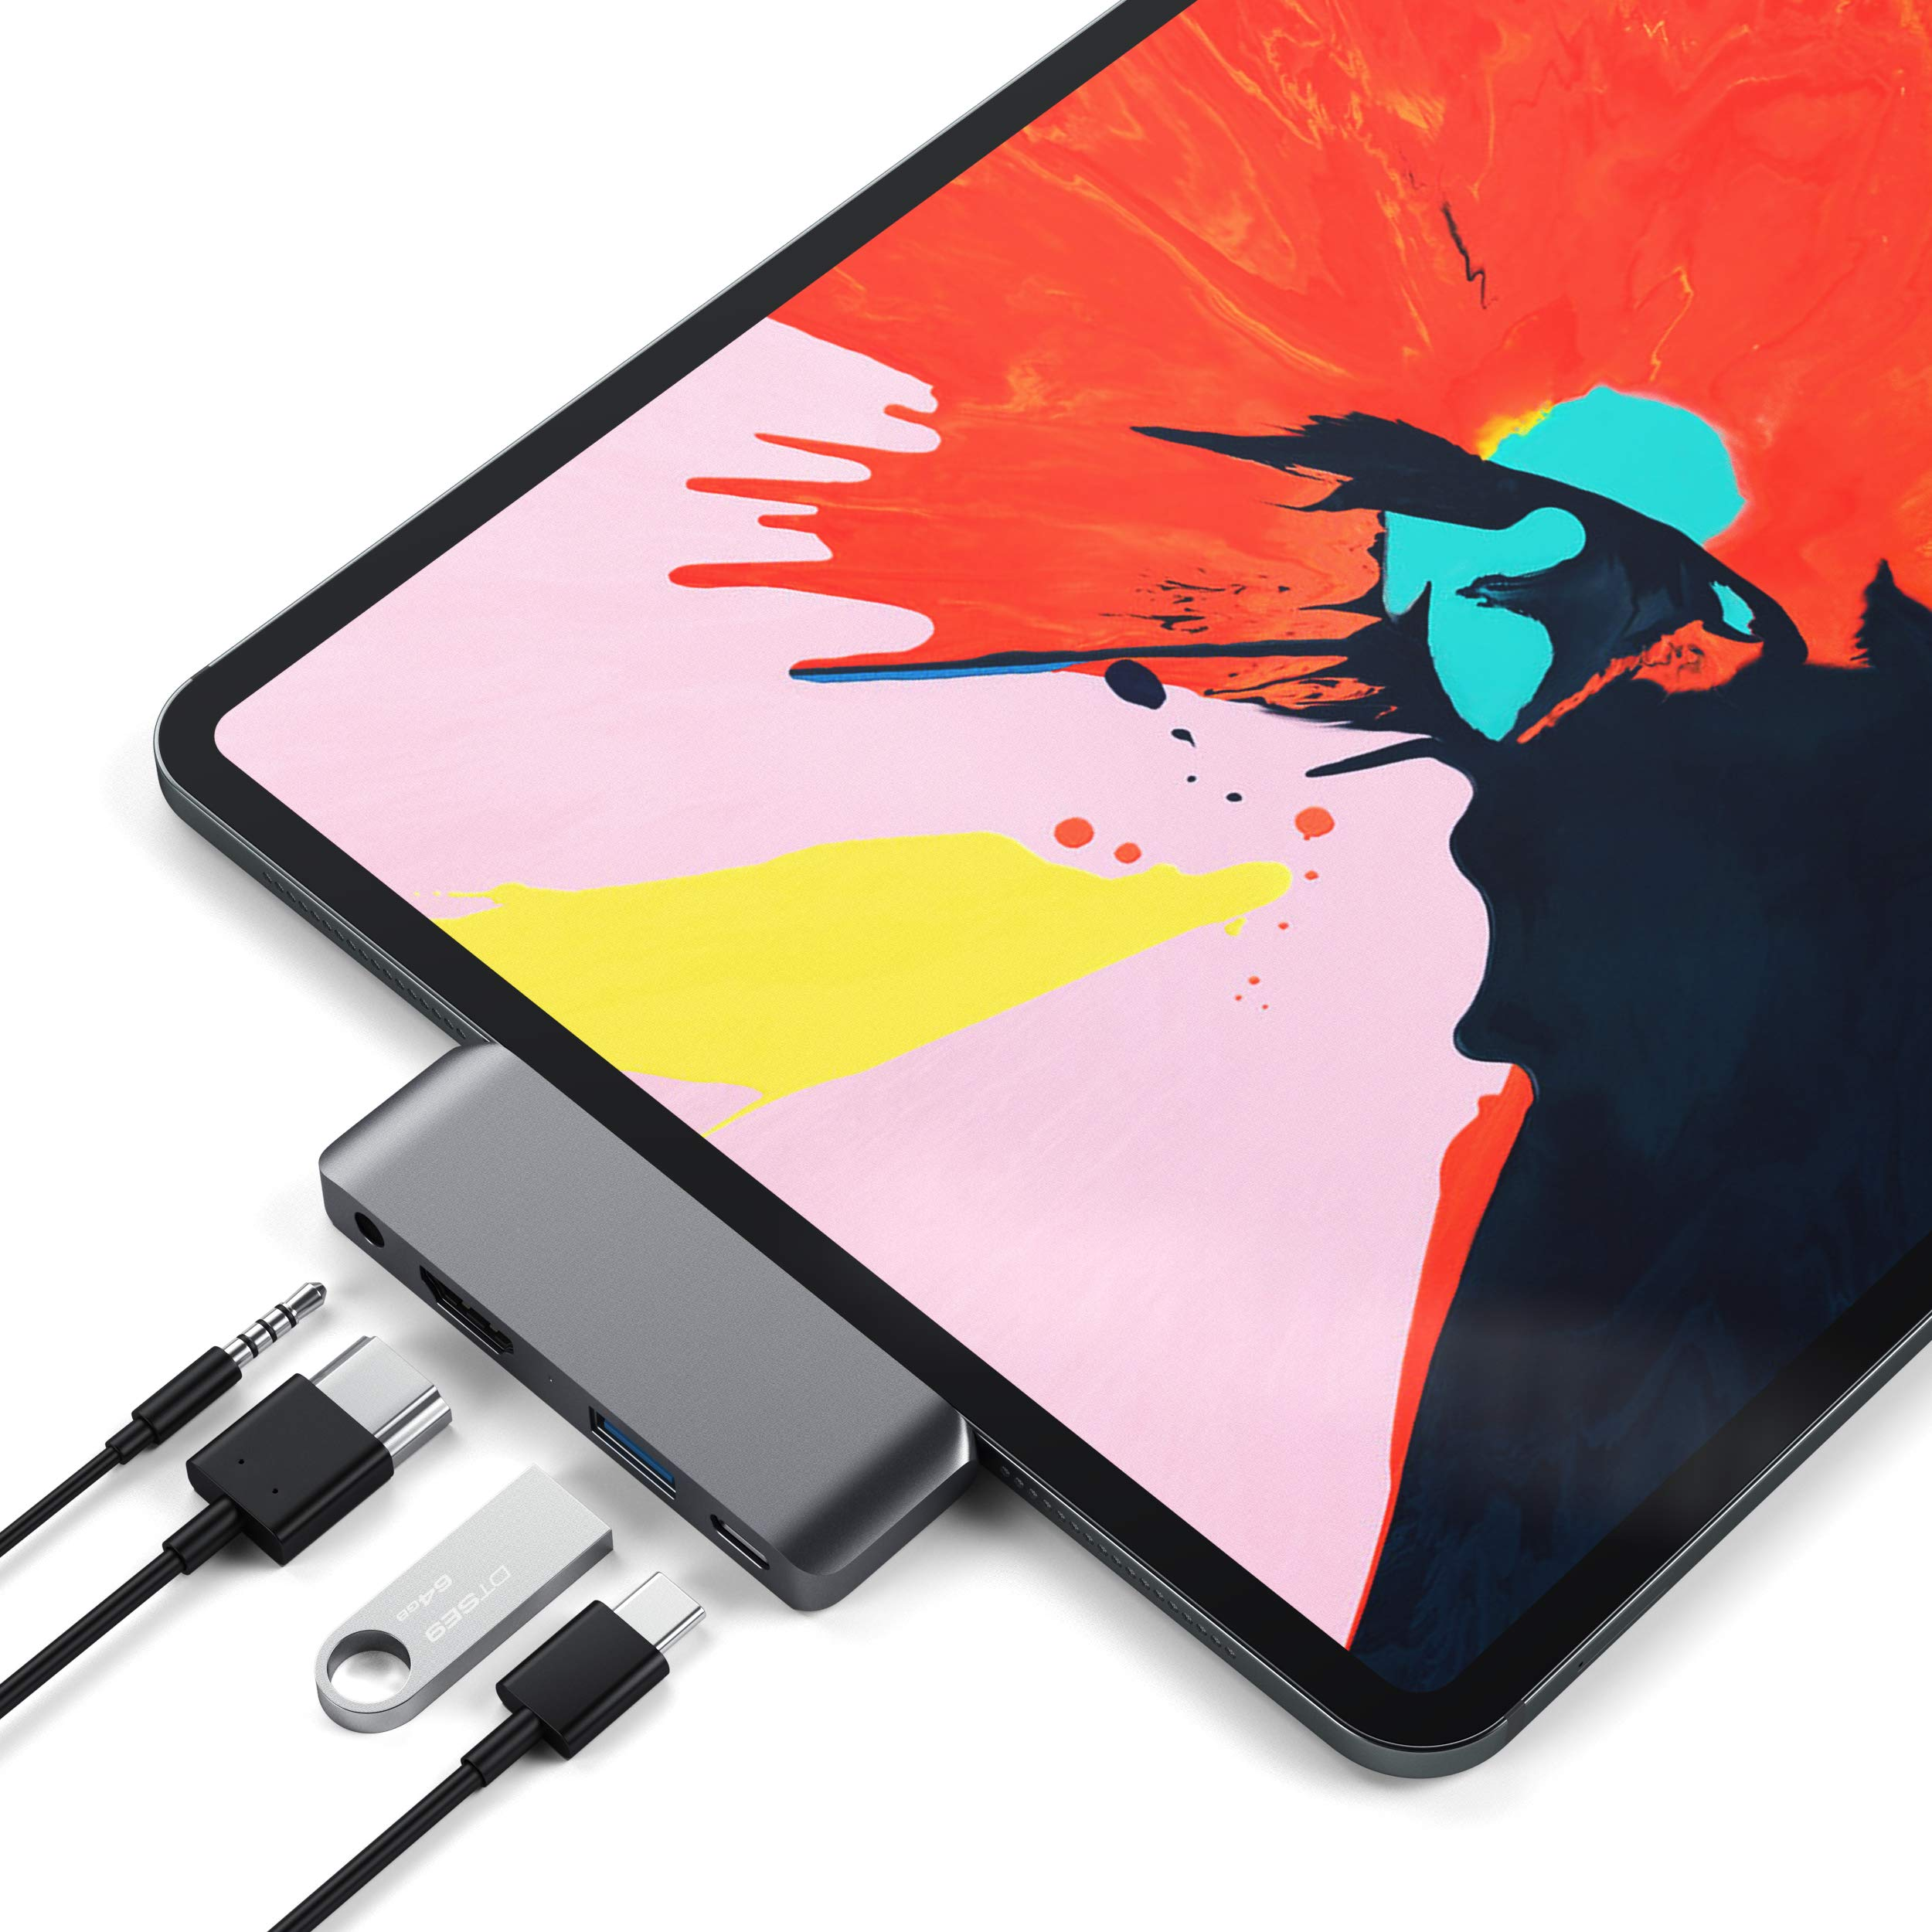 Satechi Aluminum Type-C Mobile Pro Hub Adapter with USB-C PD Charging, 4K HDMI, USB 3.0 & 3.5mm Headphone Jack - Compatible with 2018 iPad Pro, Microsoft Surface Go (Space Gray) by Satechi